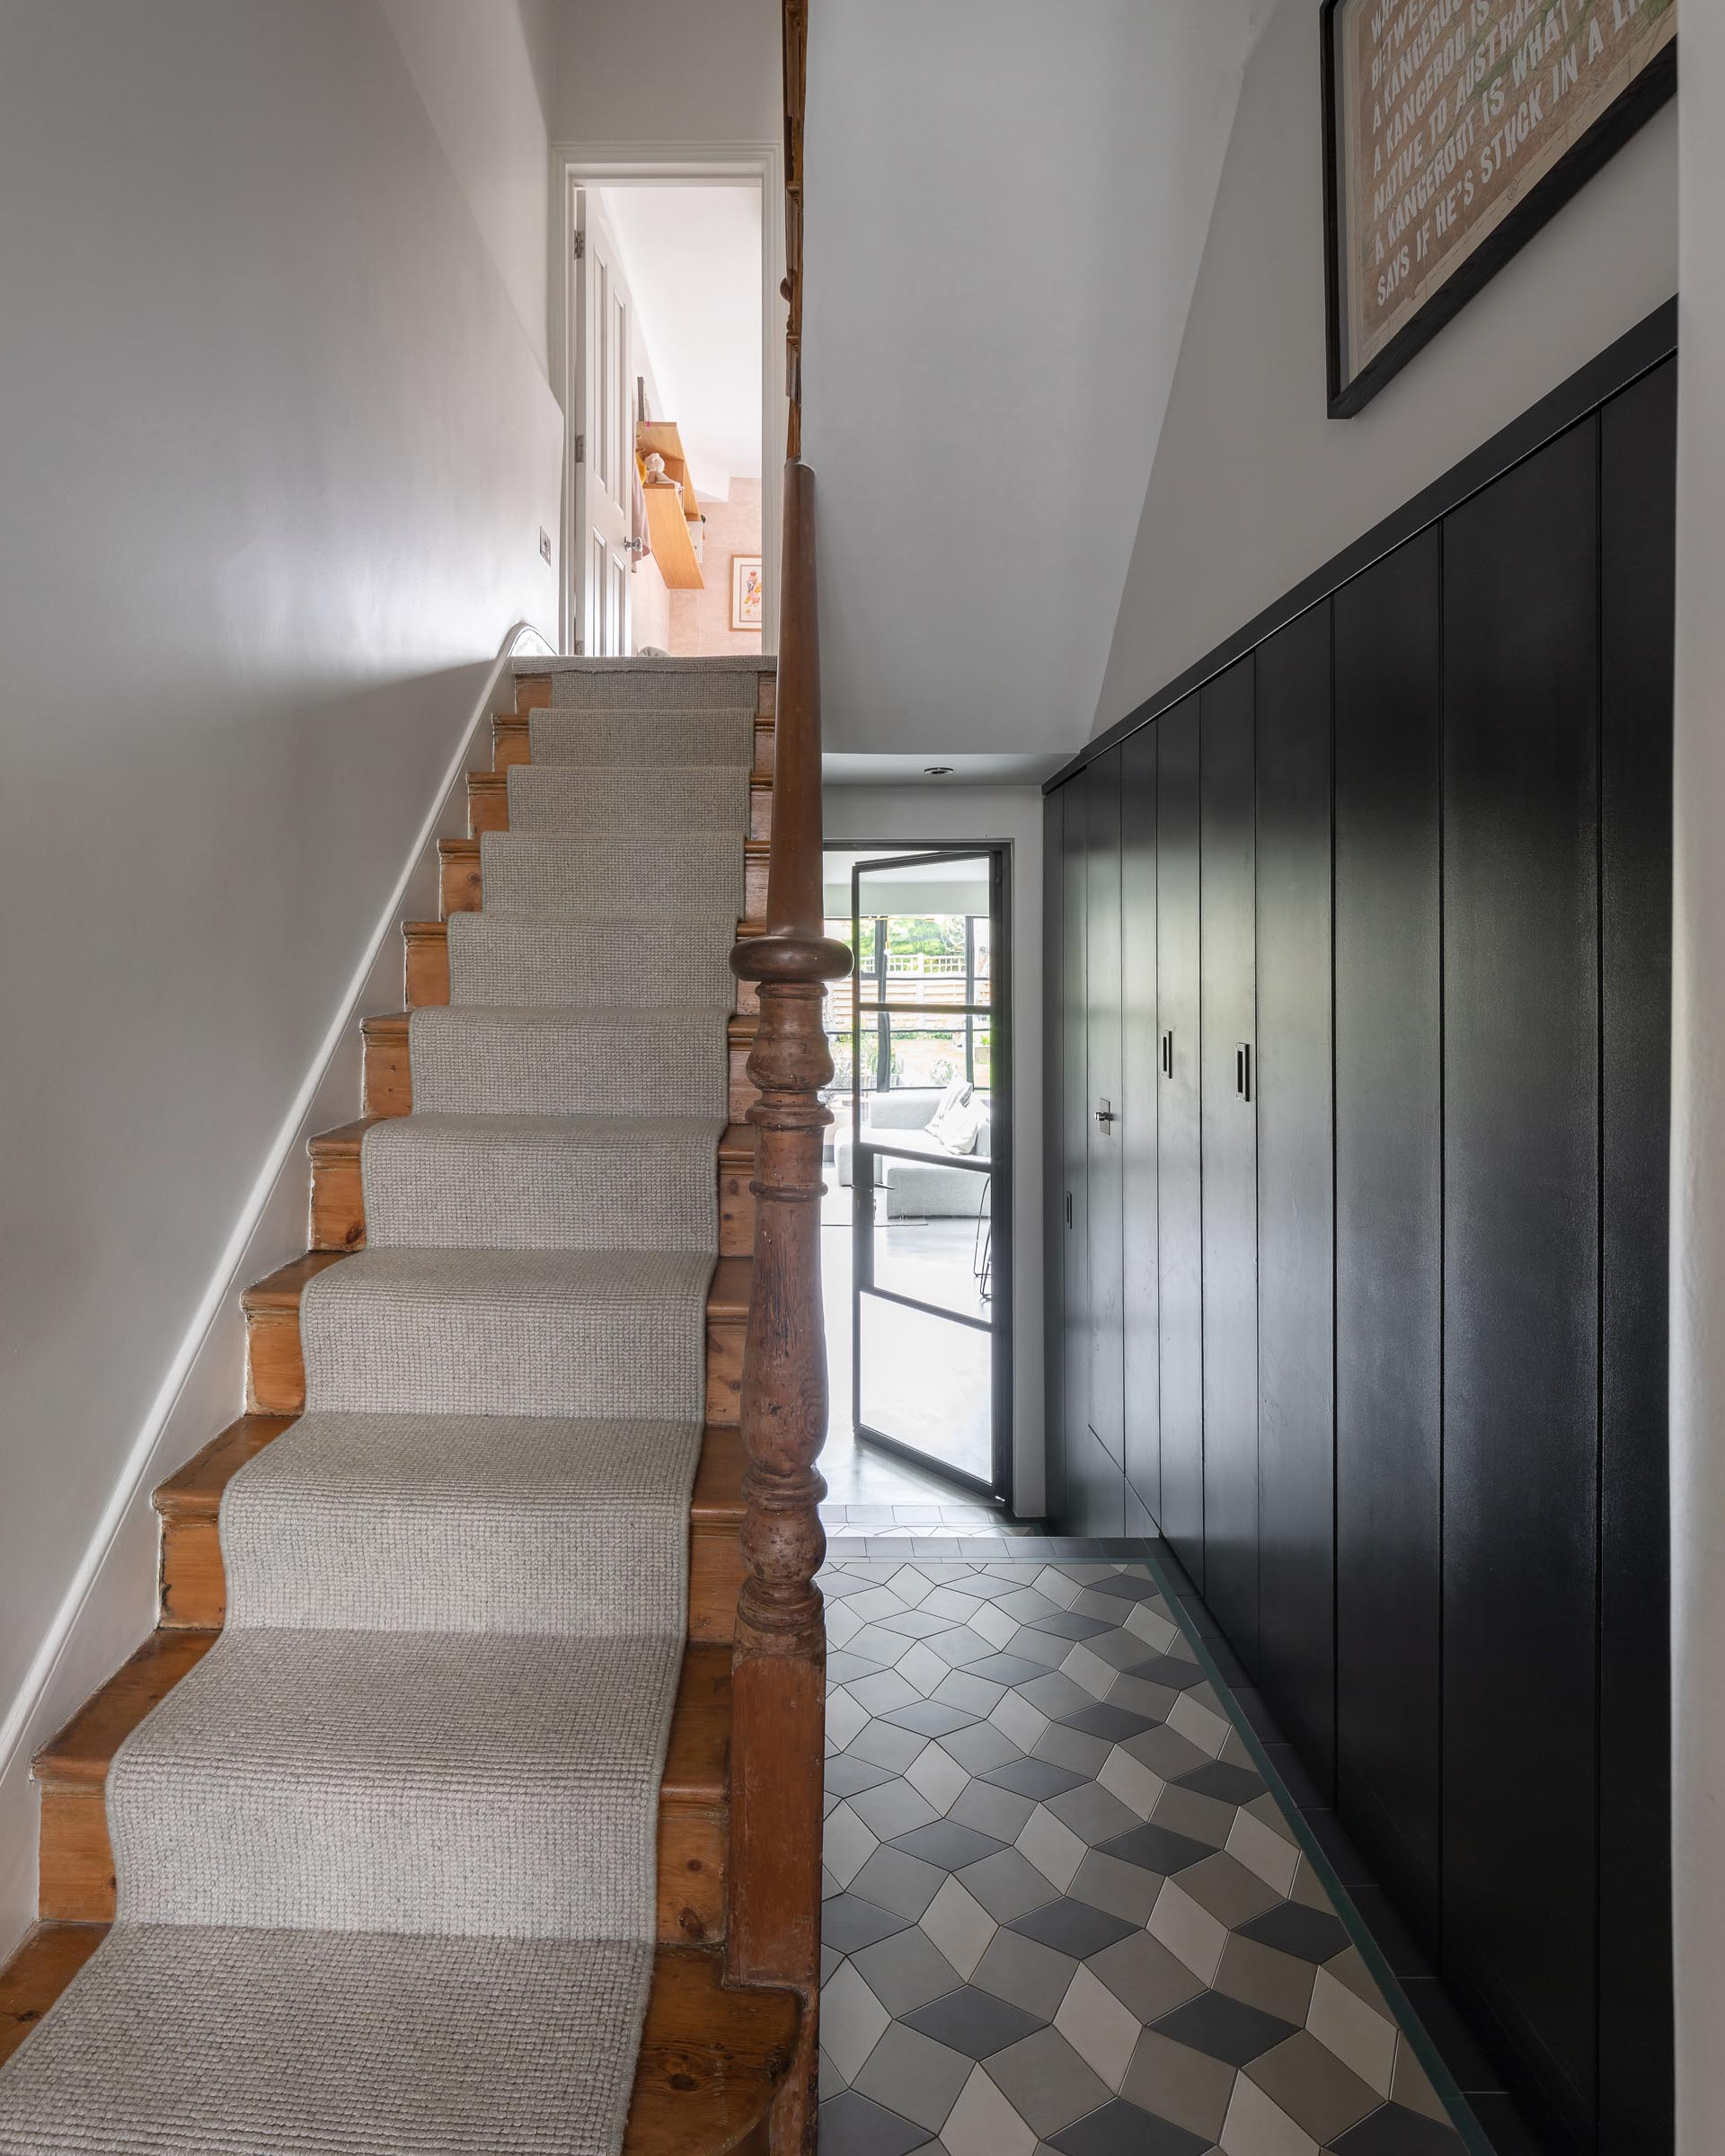 A hallway and staircase connect the original home to a new addition.